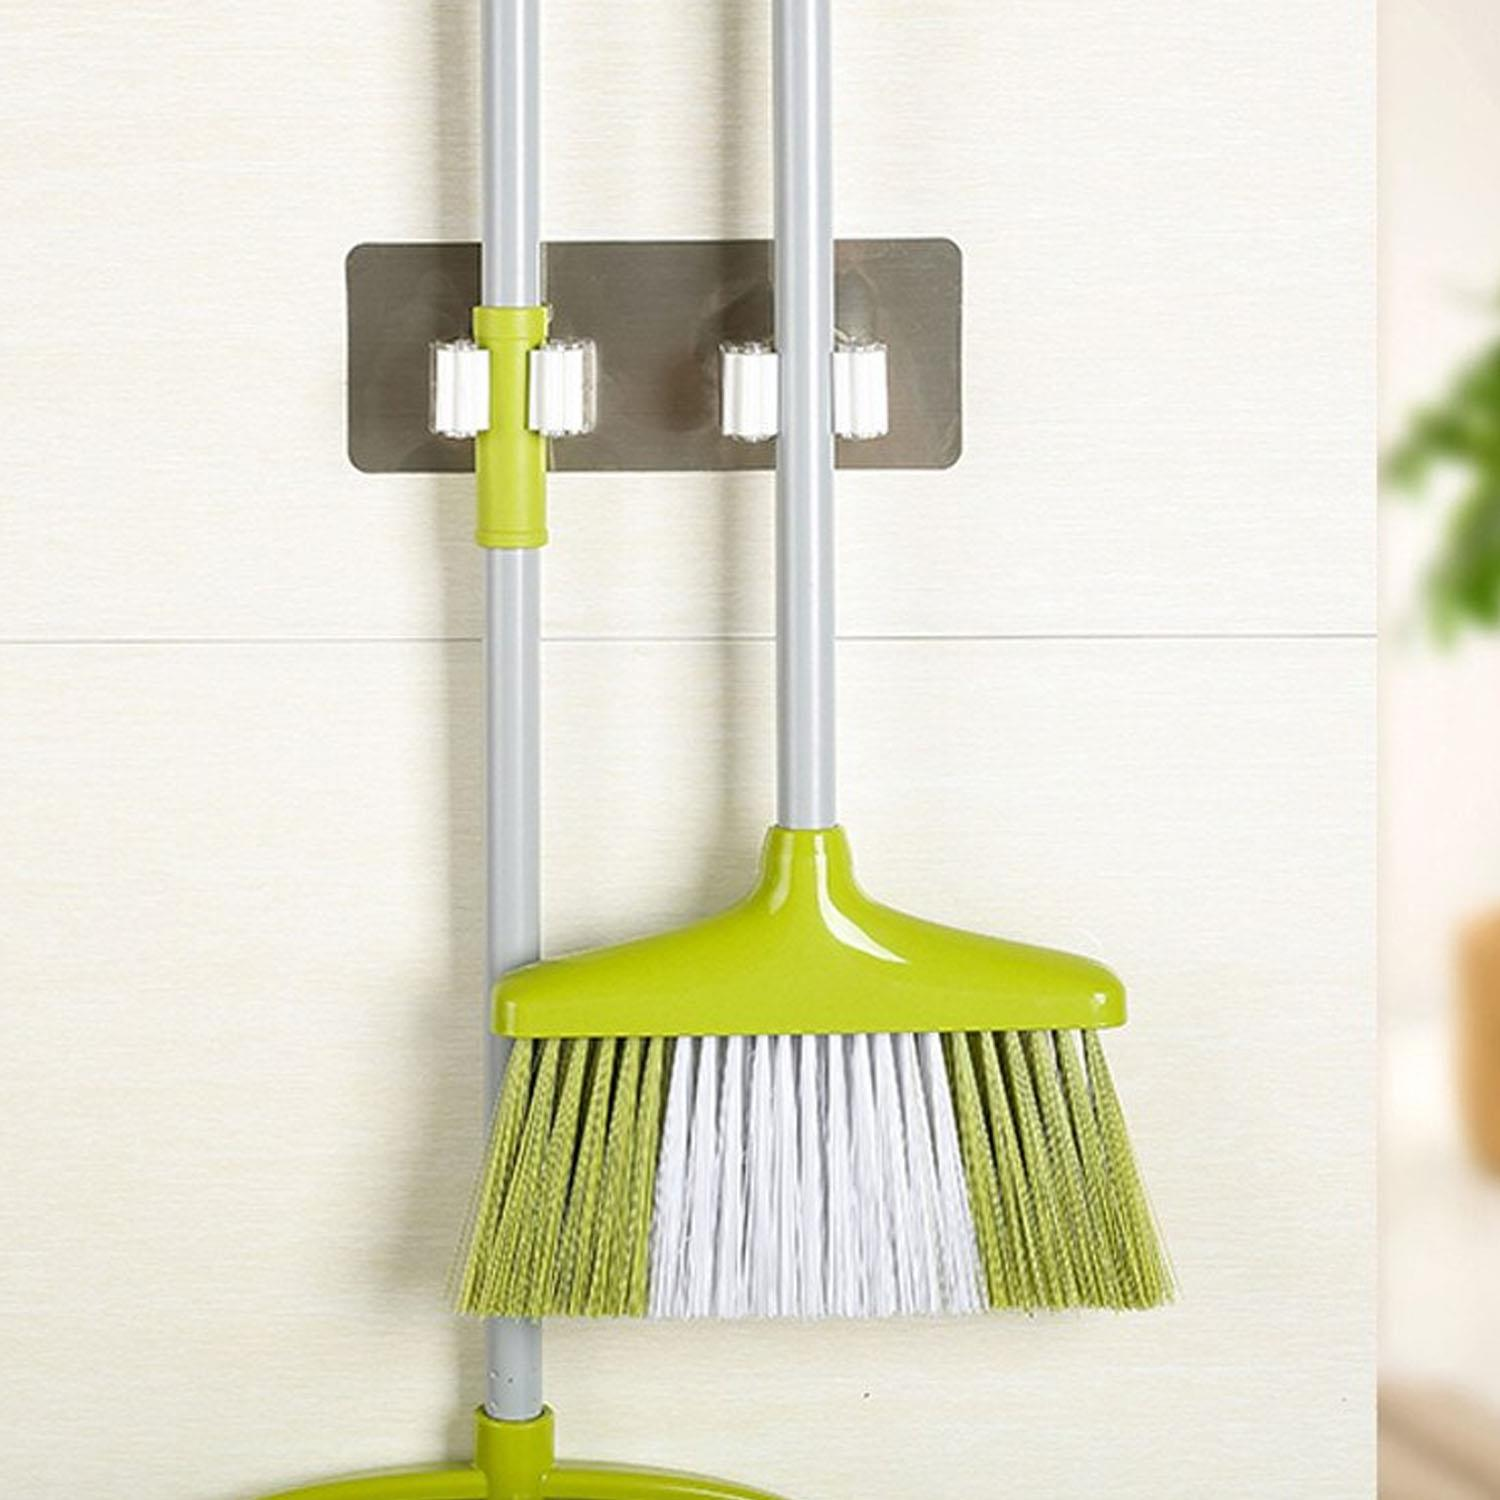 WALL MOUNTED 3//4//5 RACK KITCHEN STORAGE MOP ORGANIZER HOLDER BRUSH BROOM HANGER